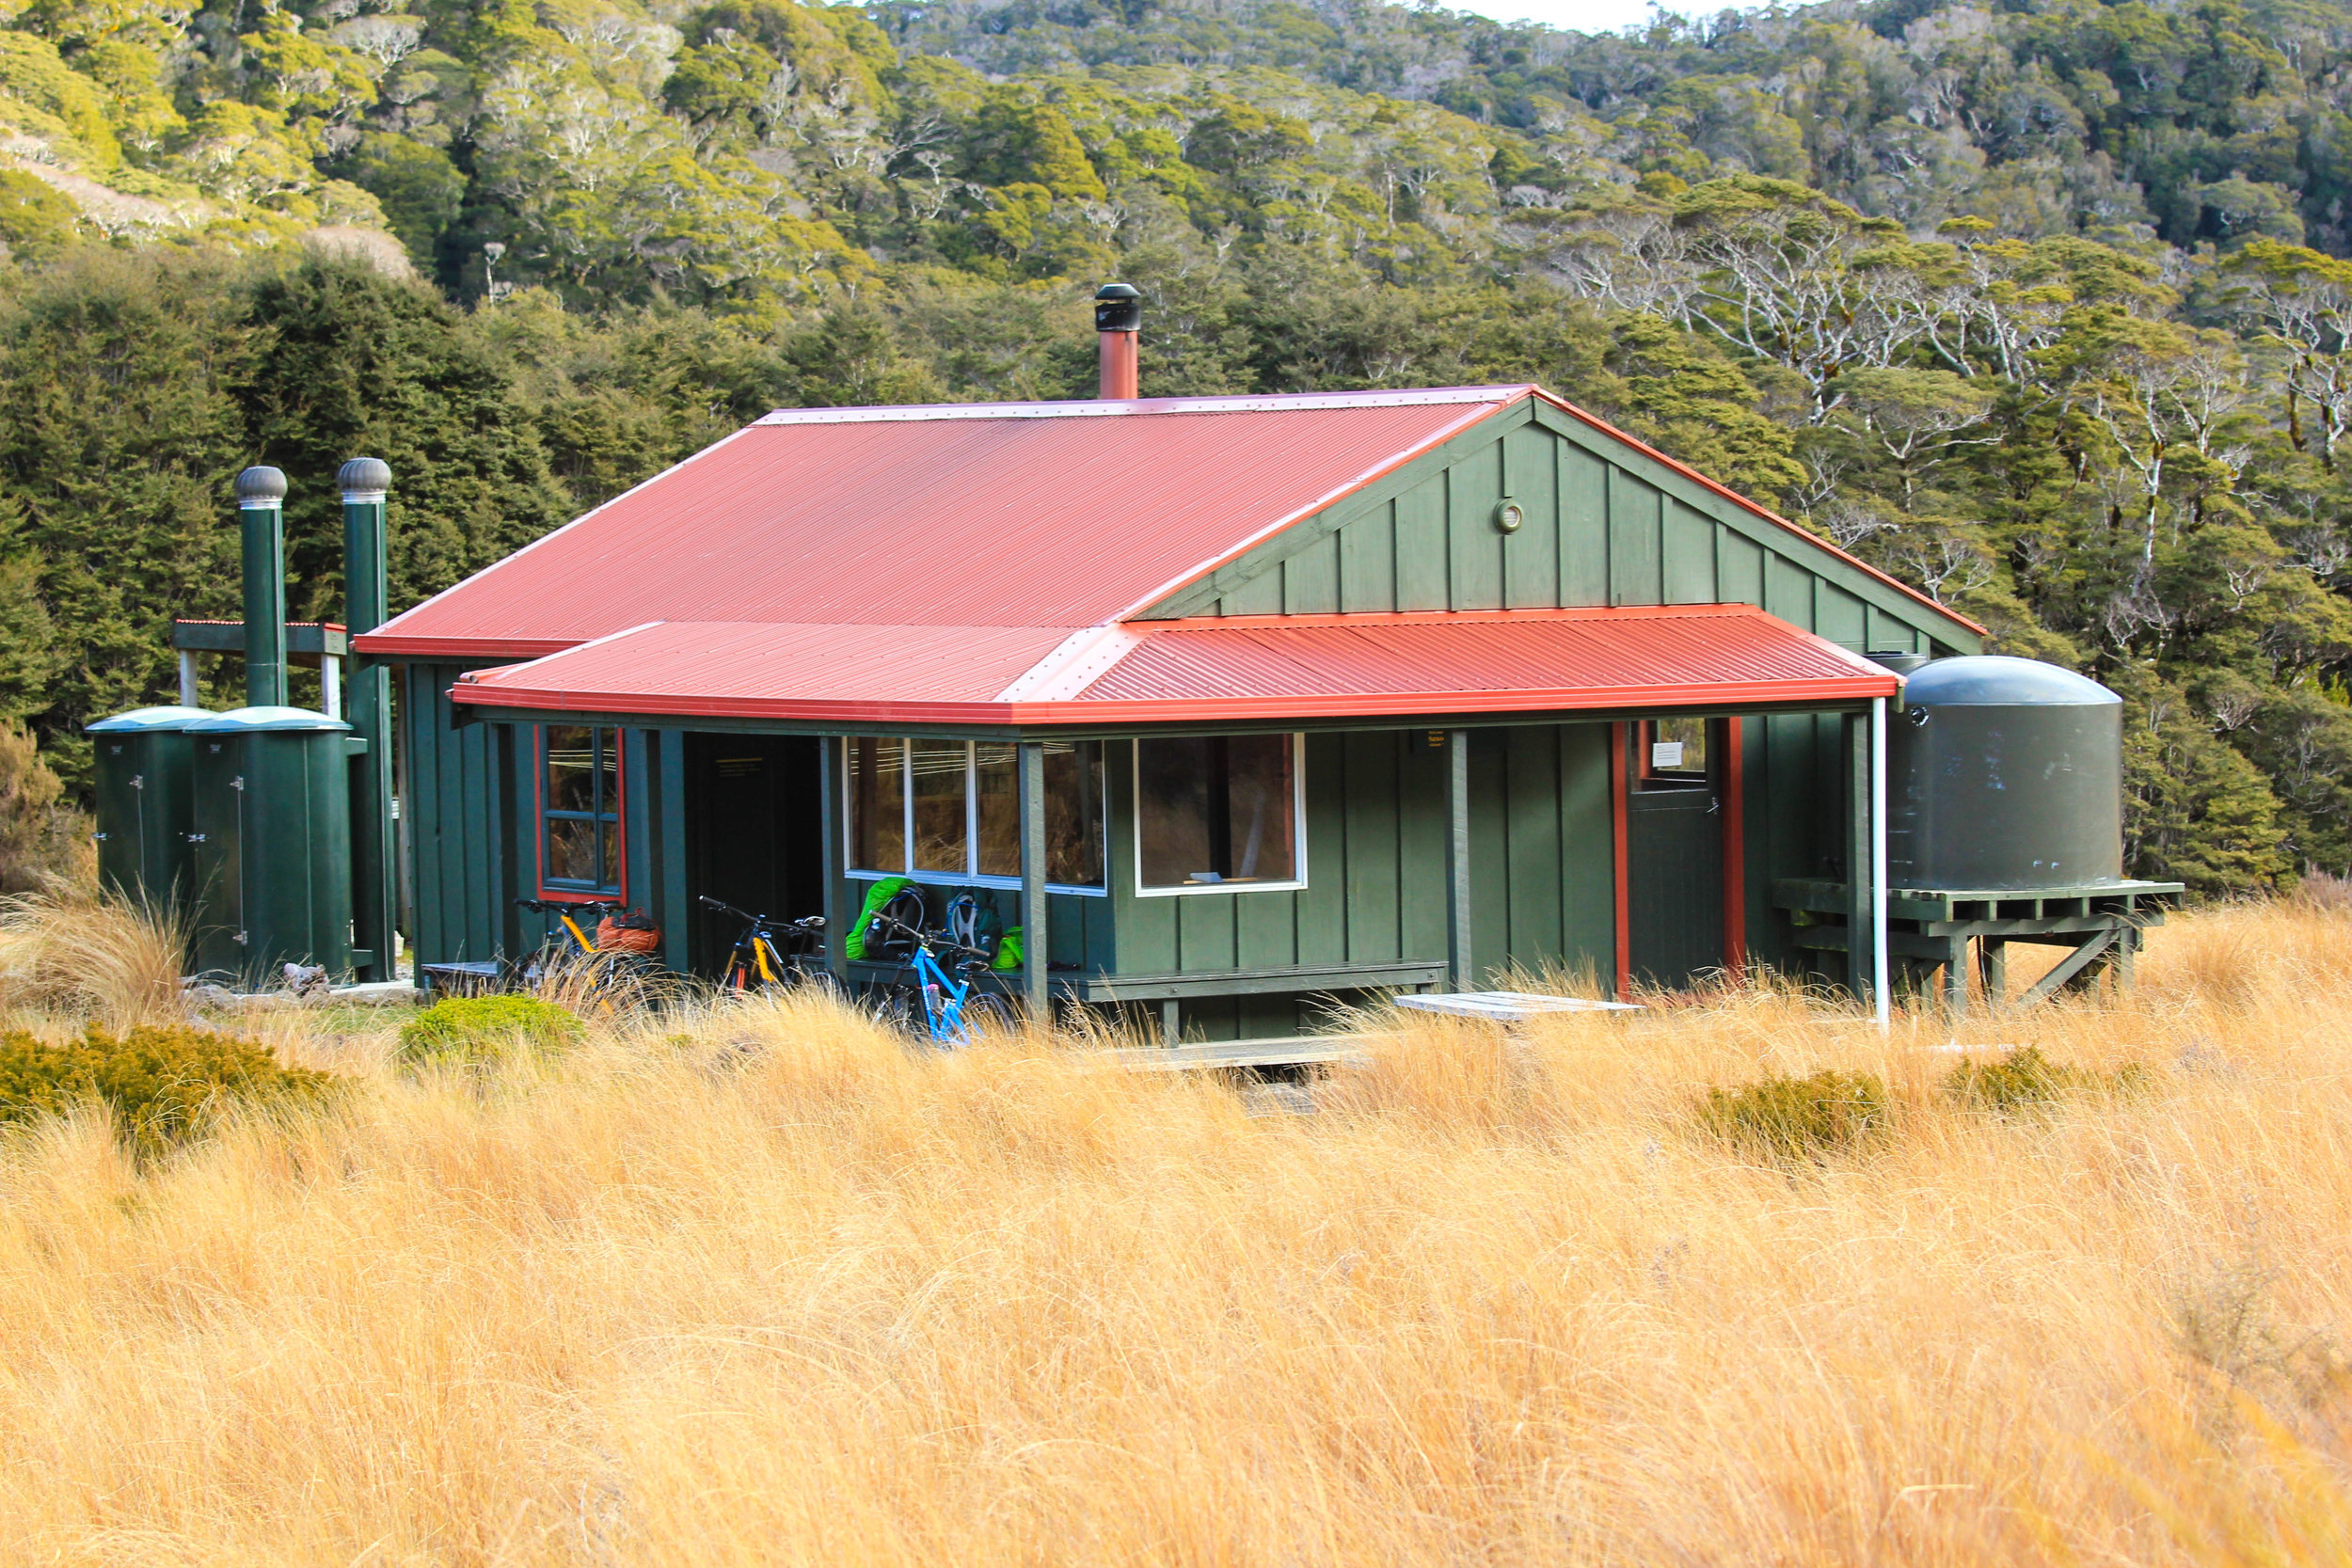 Saxon Hut on the Heaphy Track, a busy thorough fare with both hikers and bikers